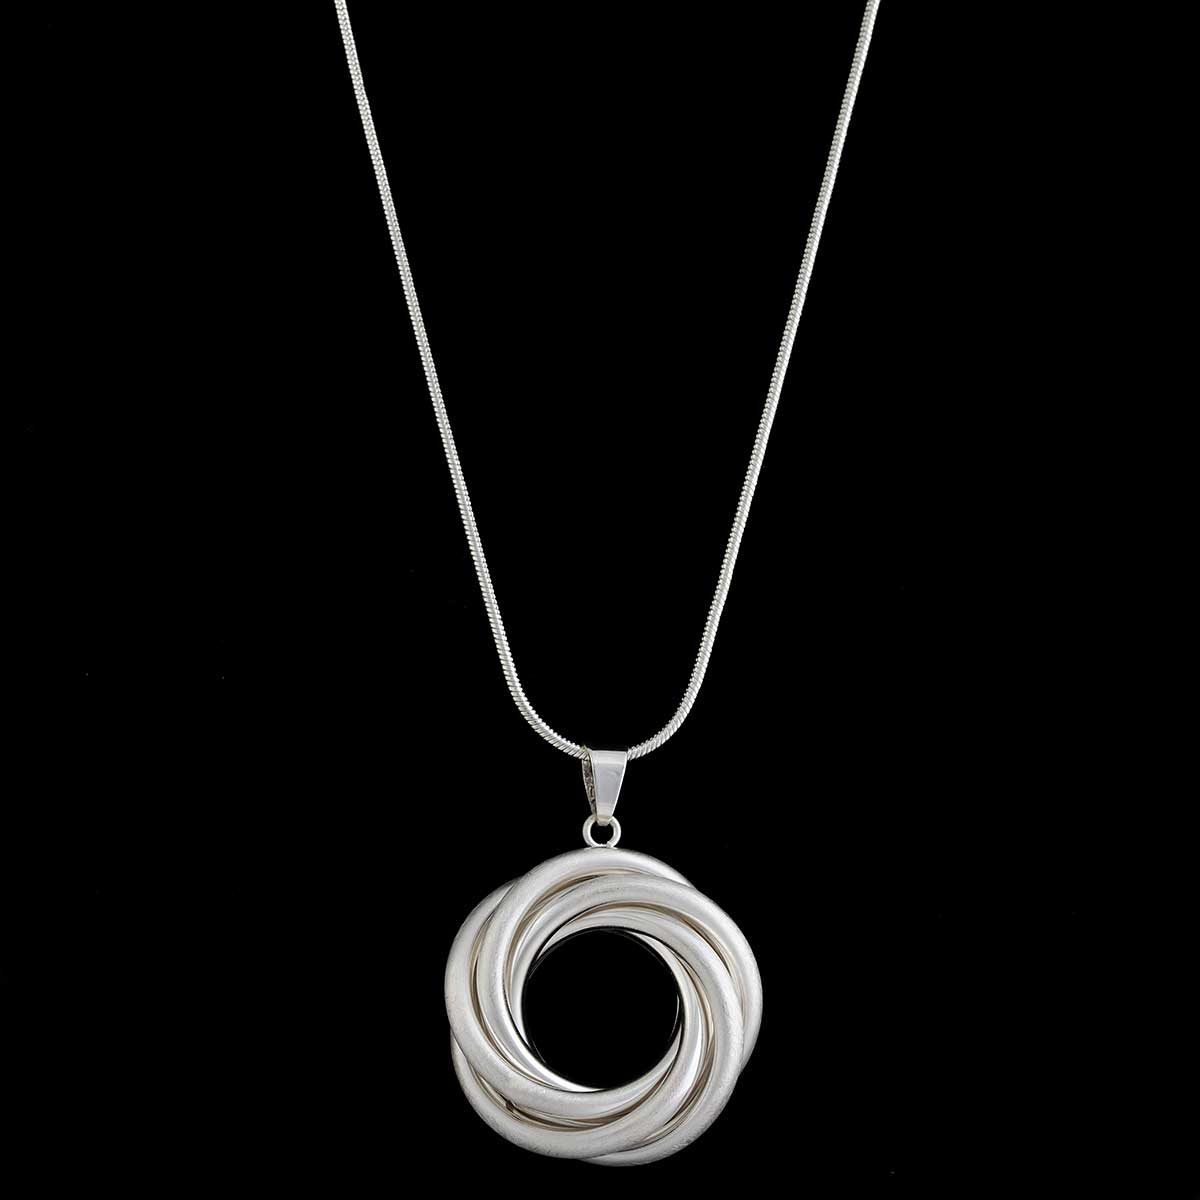 Satin and Shiny Silver Multi Circle Medallion Necklace on Chain